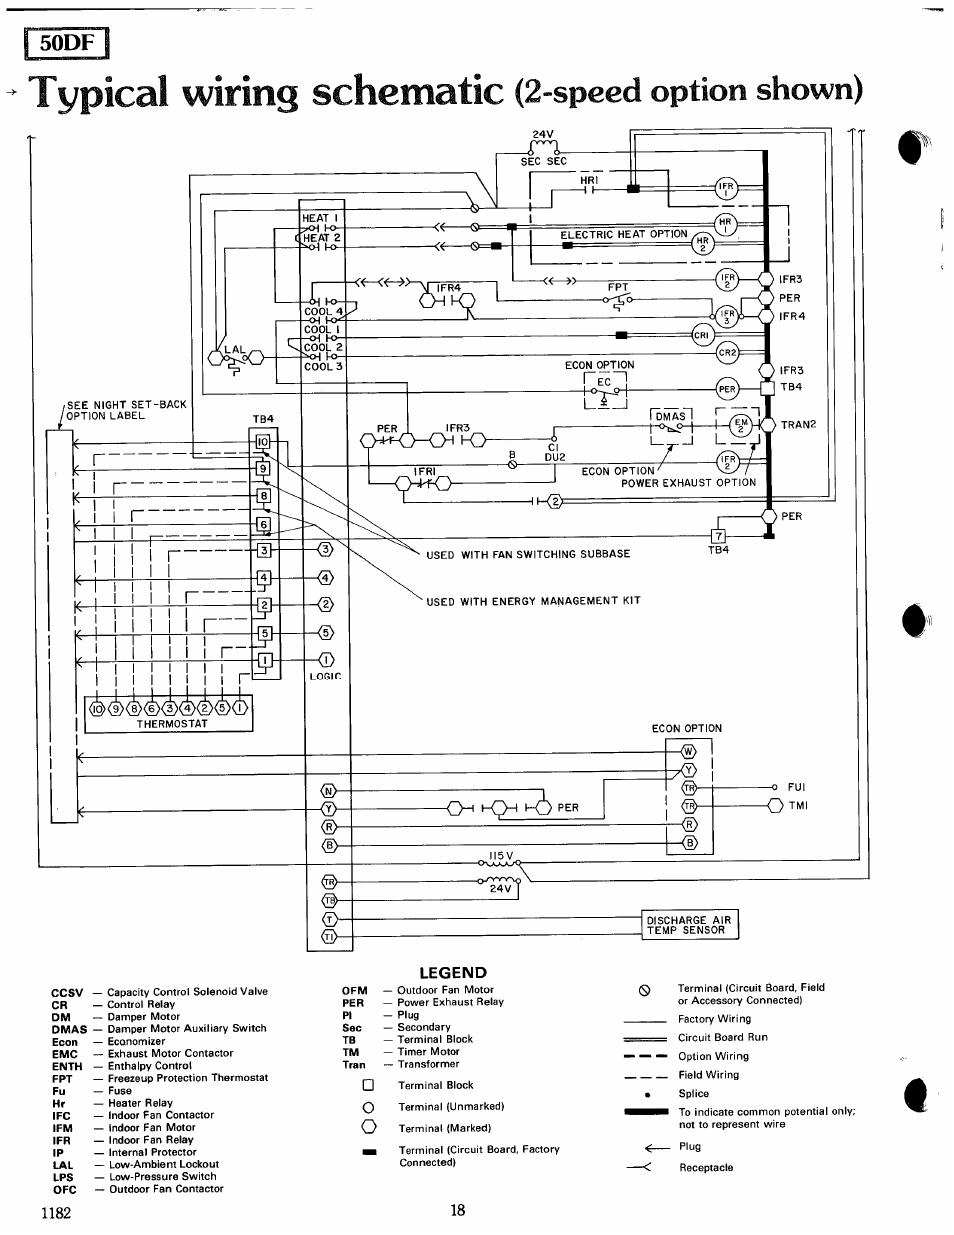 Fsodfl Ccsv Typiccll Wiring Schematic Carrier Modu Pac 50df User Contactor Diagram Manual Page 18 37